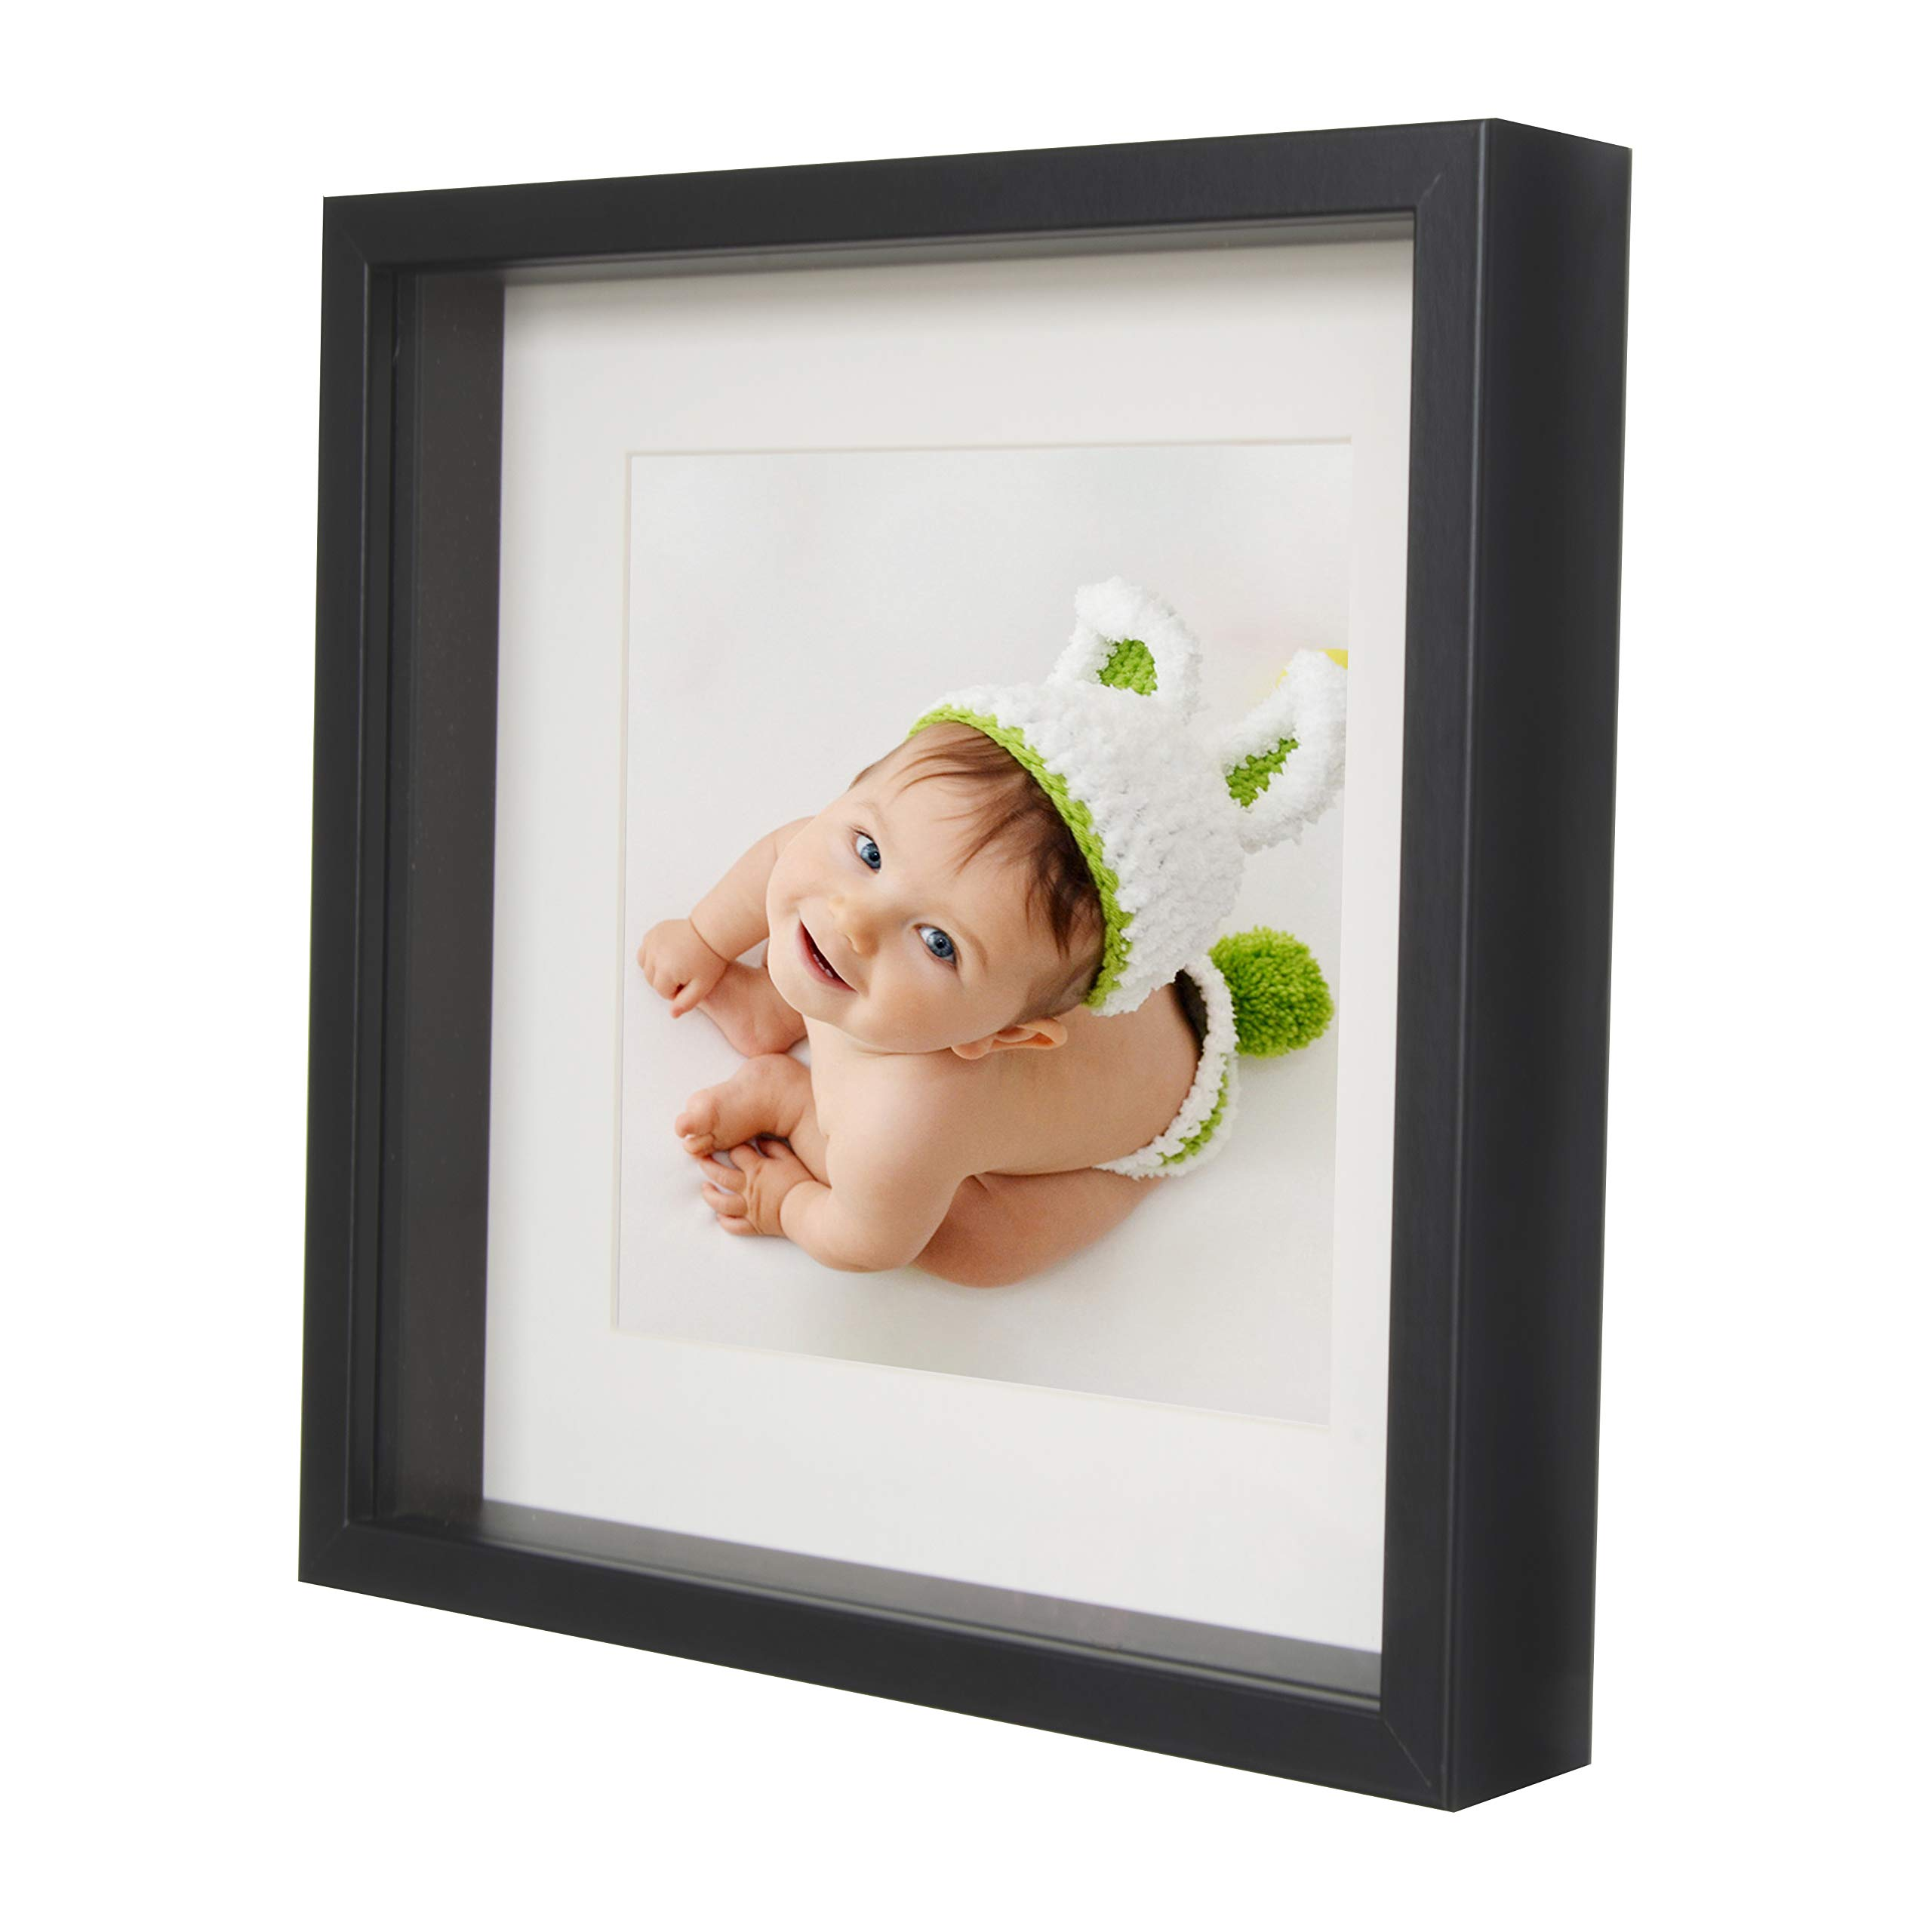 BD ART 9x9 (23 x 23 x 4.7 cm) Black Shadow Box 3D Square Picture Frame with Mat for 5x5 inch Photo, Glass Front by BD ART